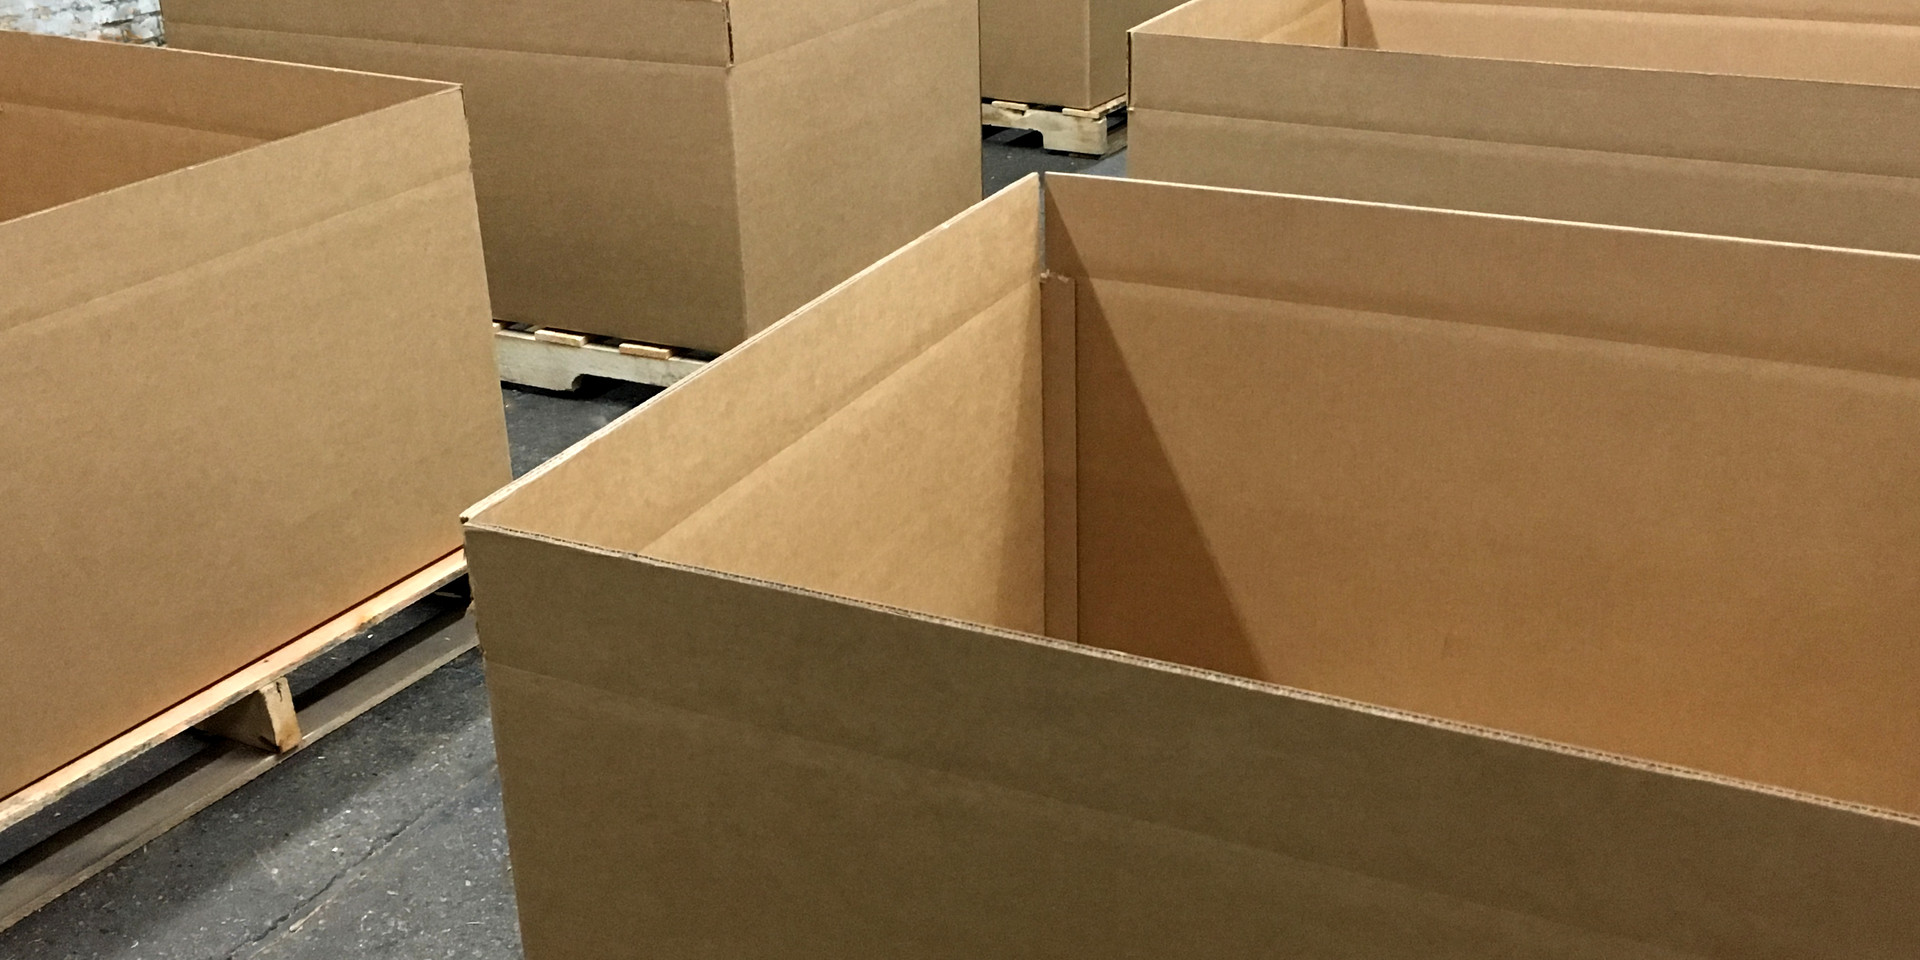 pallets with boxes